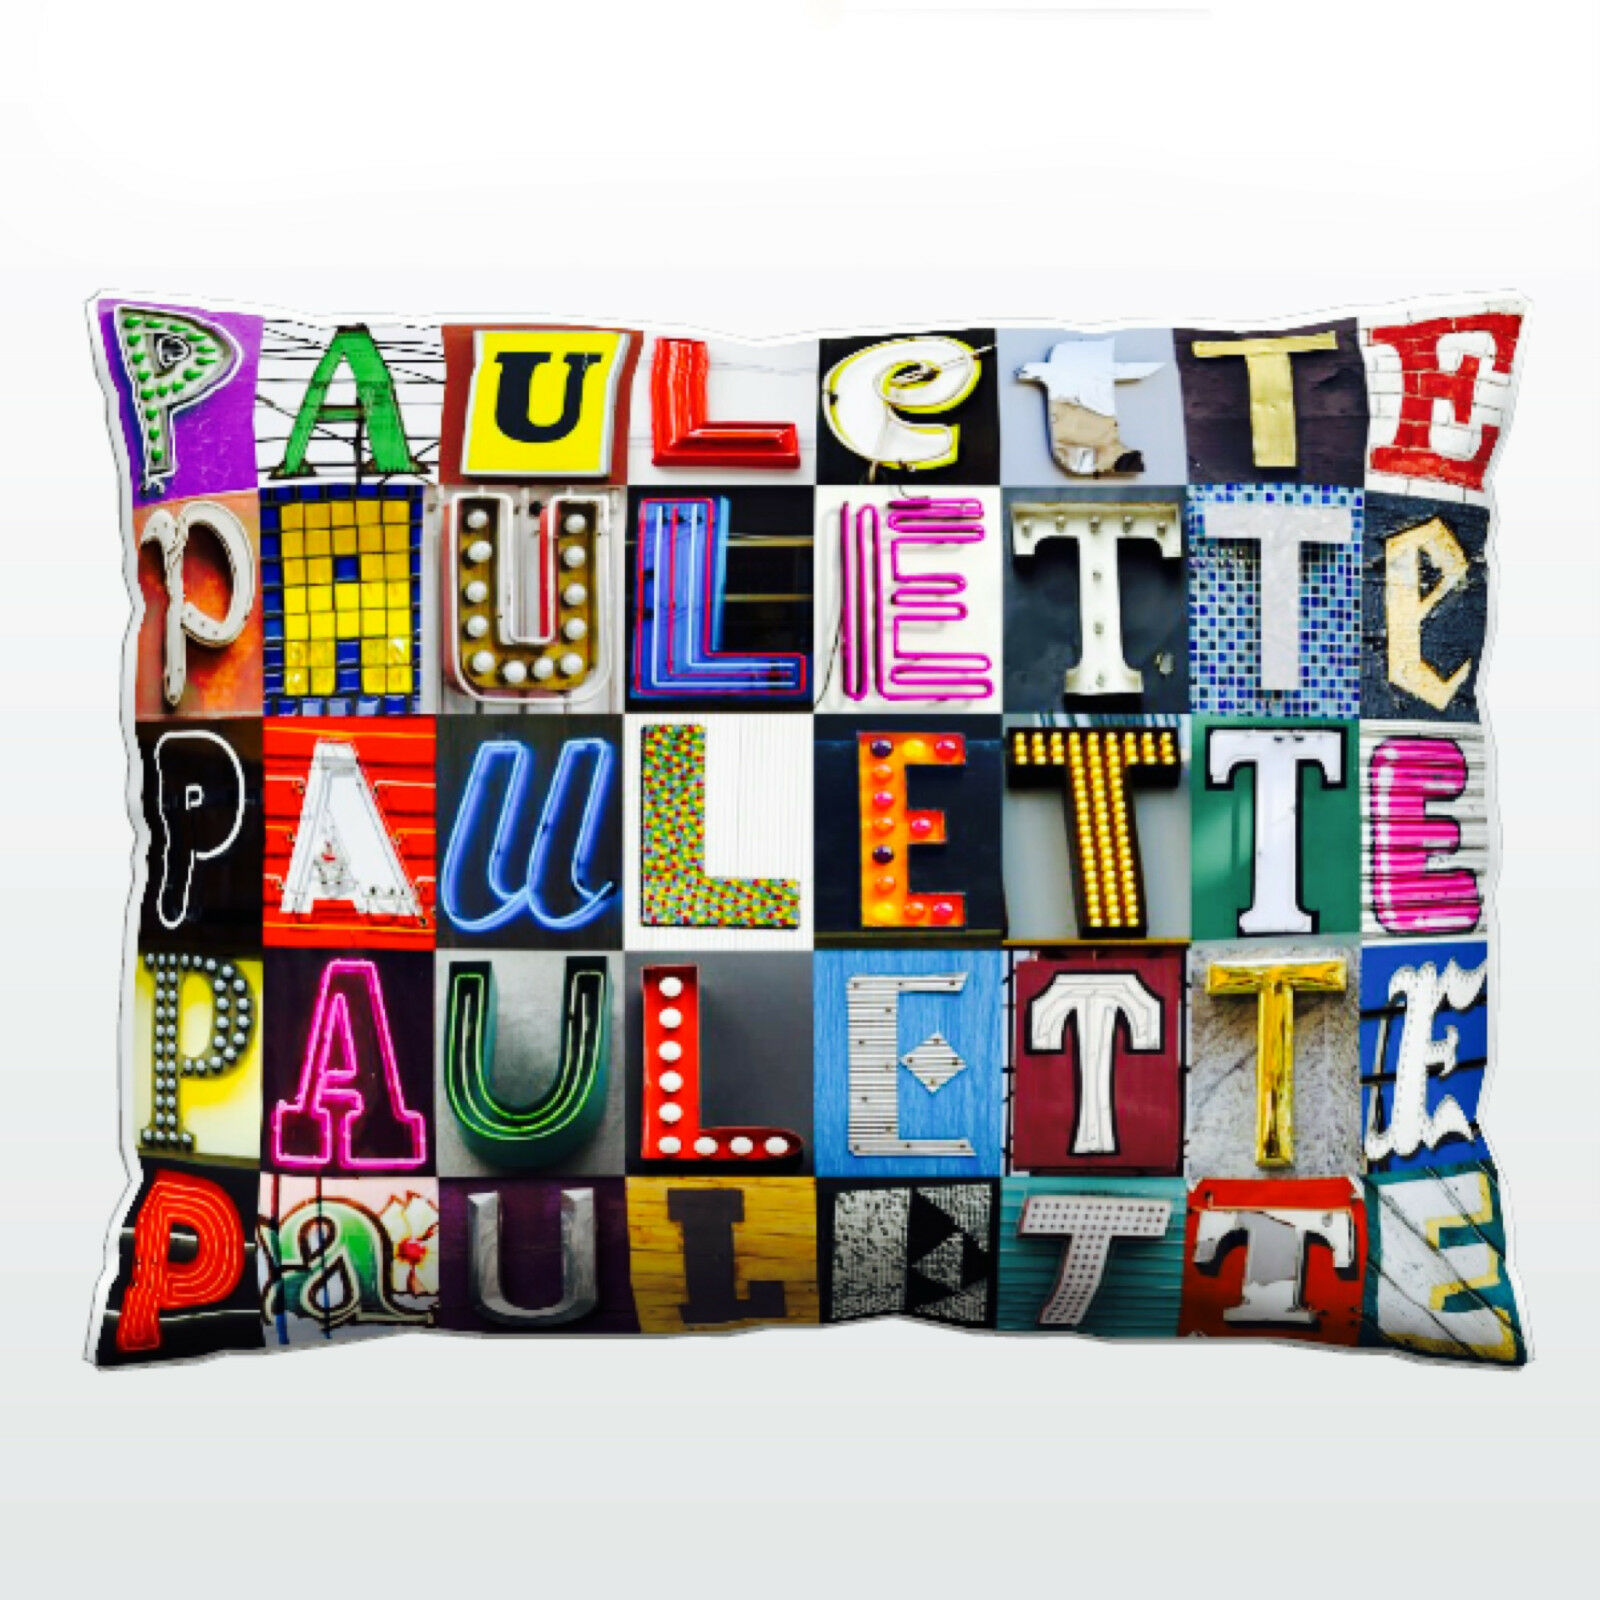 Personalized Pillow featuring the name PAULETTE in photos of sign letters